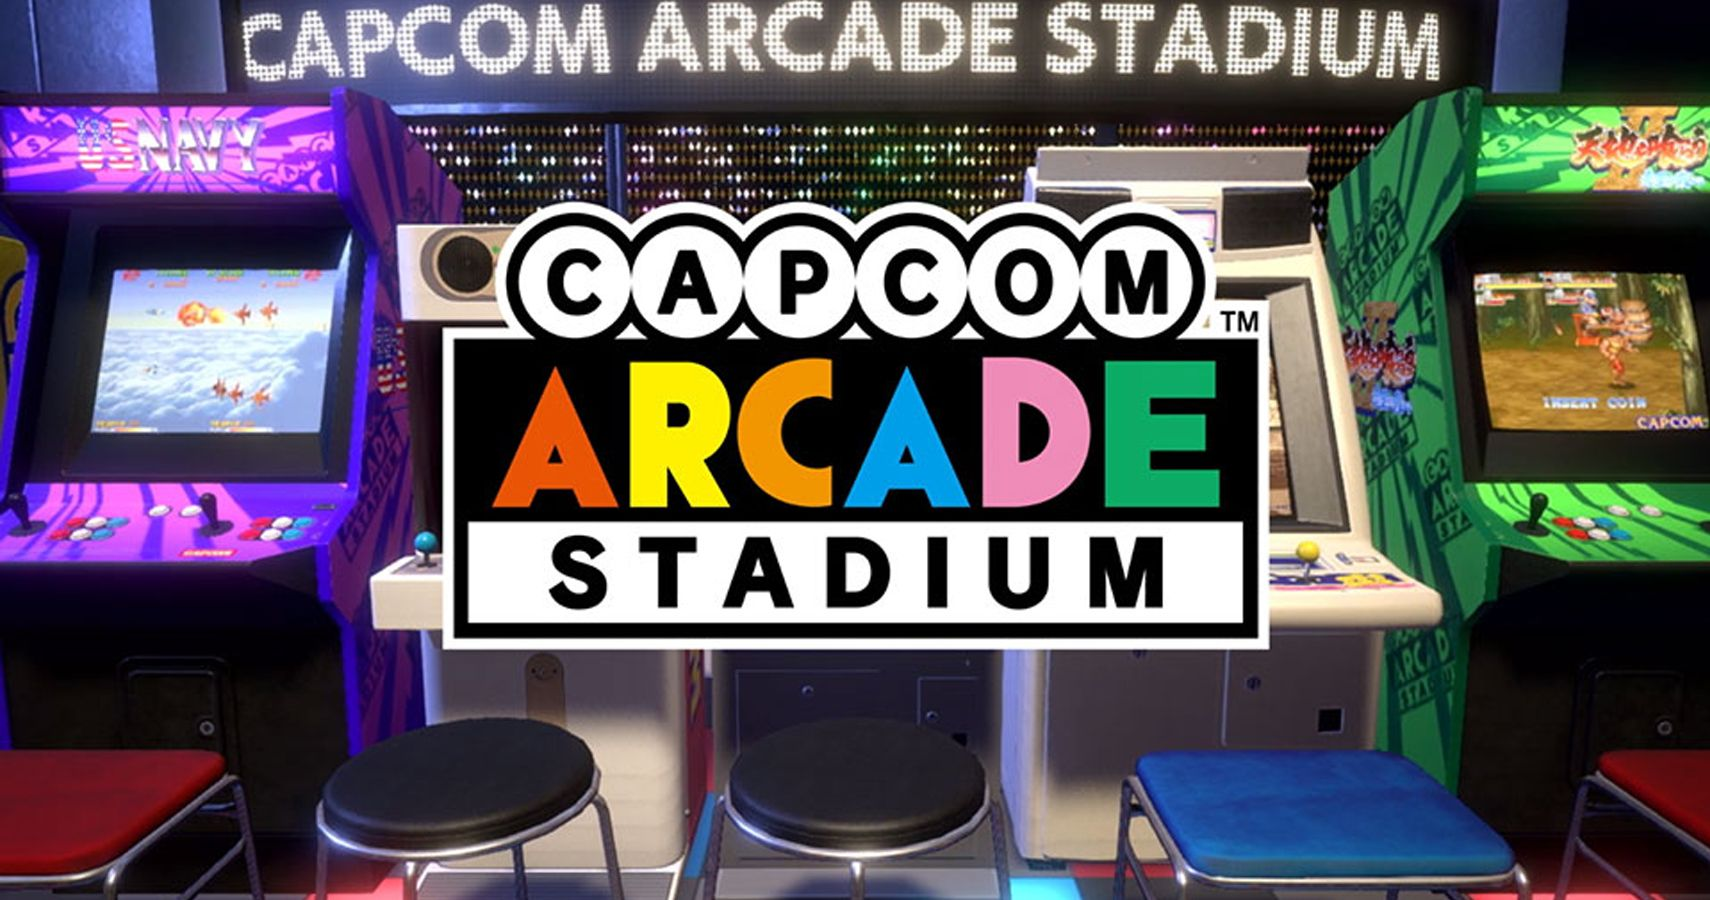 Capcom Arcade Stadium Coming To PC, PS4, and Xbox One 'Soon'